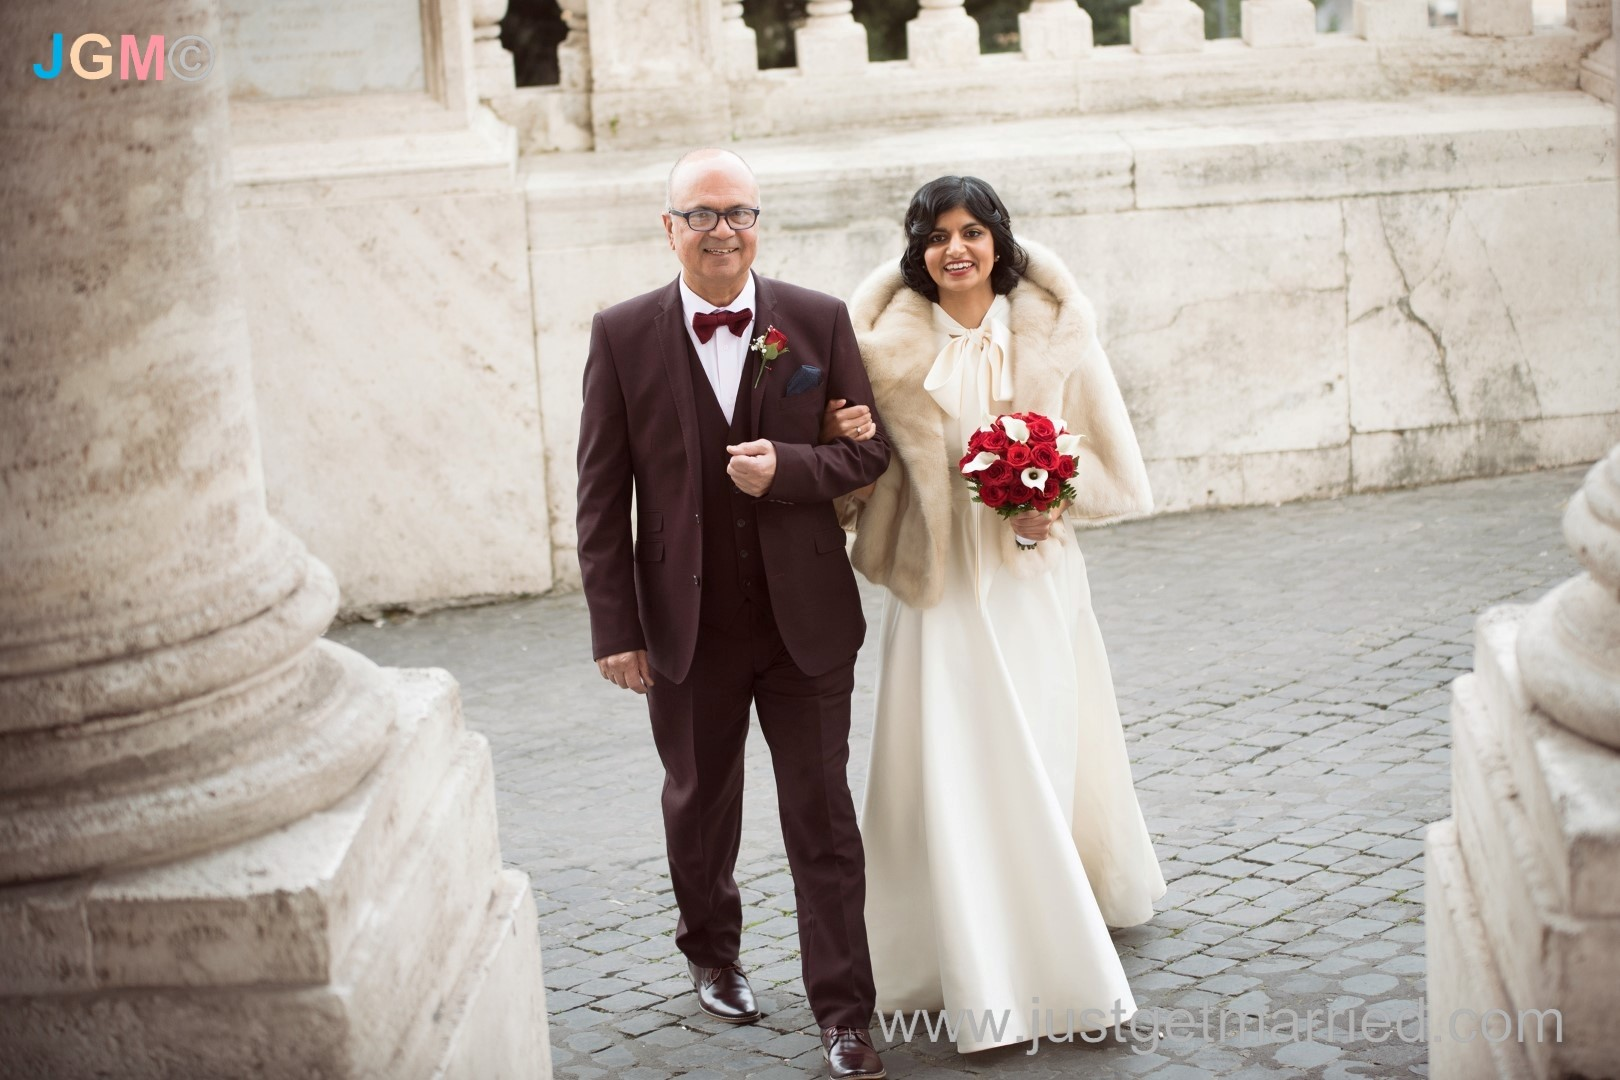 Where To Get Married In Italy: Campidoglio Wedding Photo Gallery, Declan